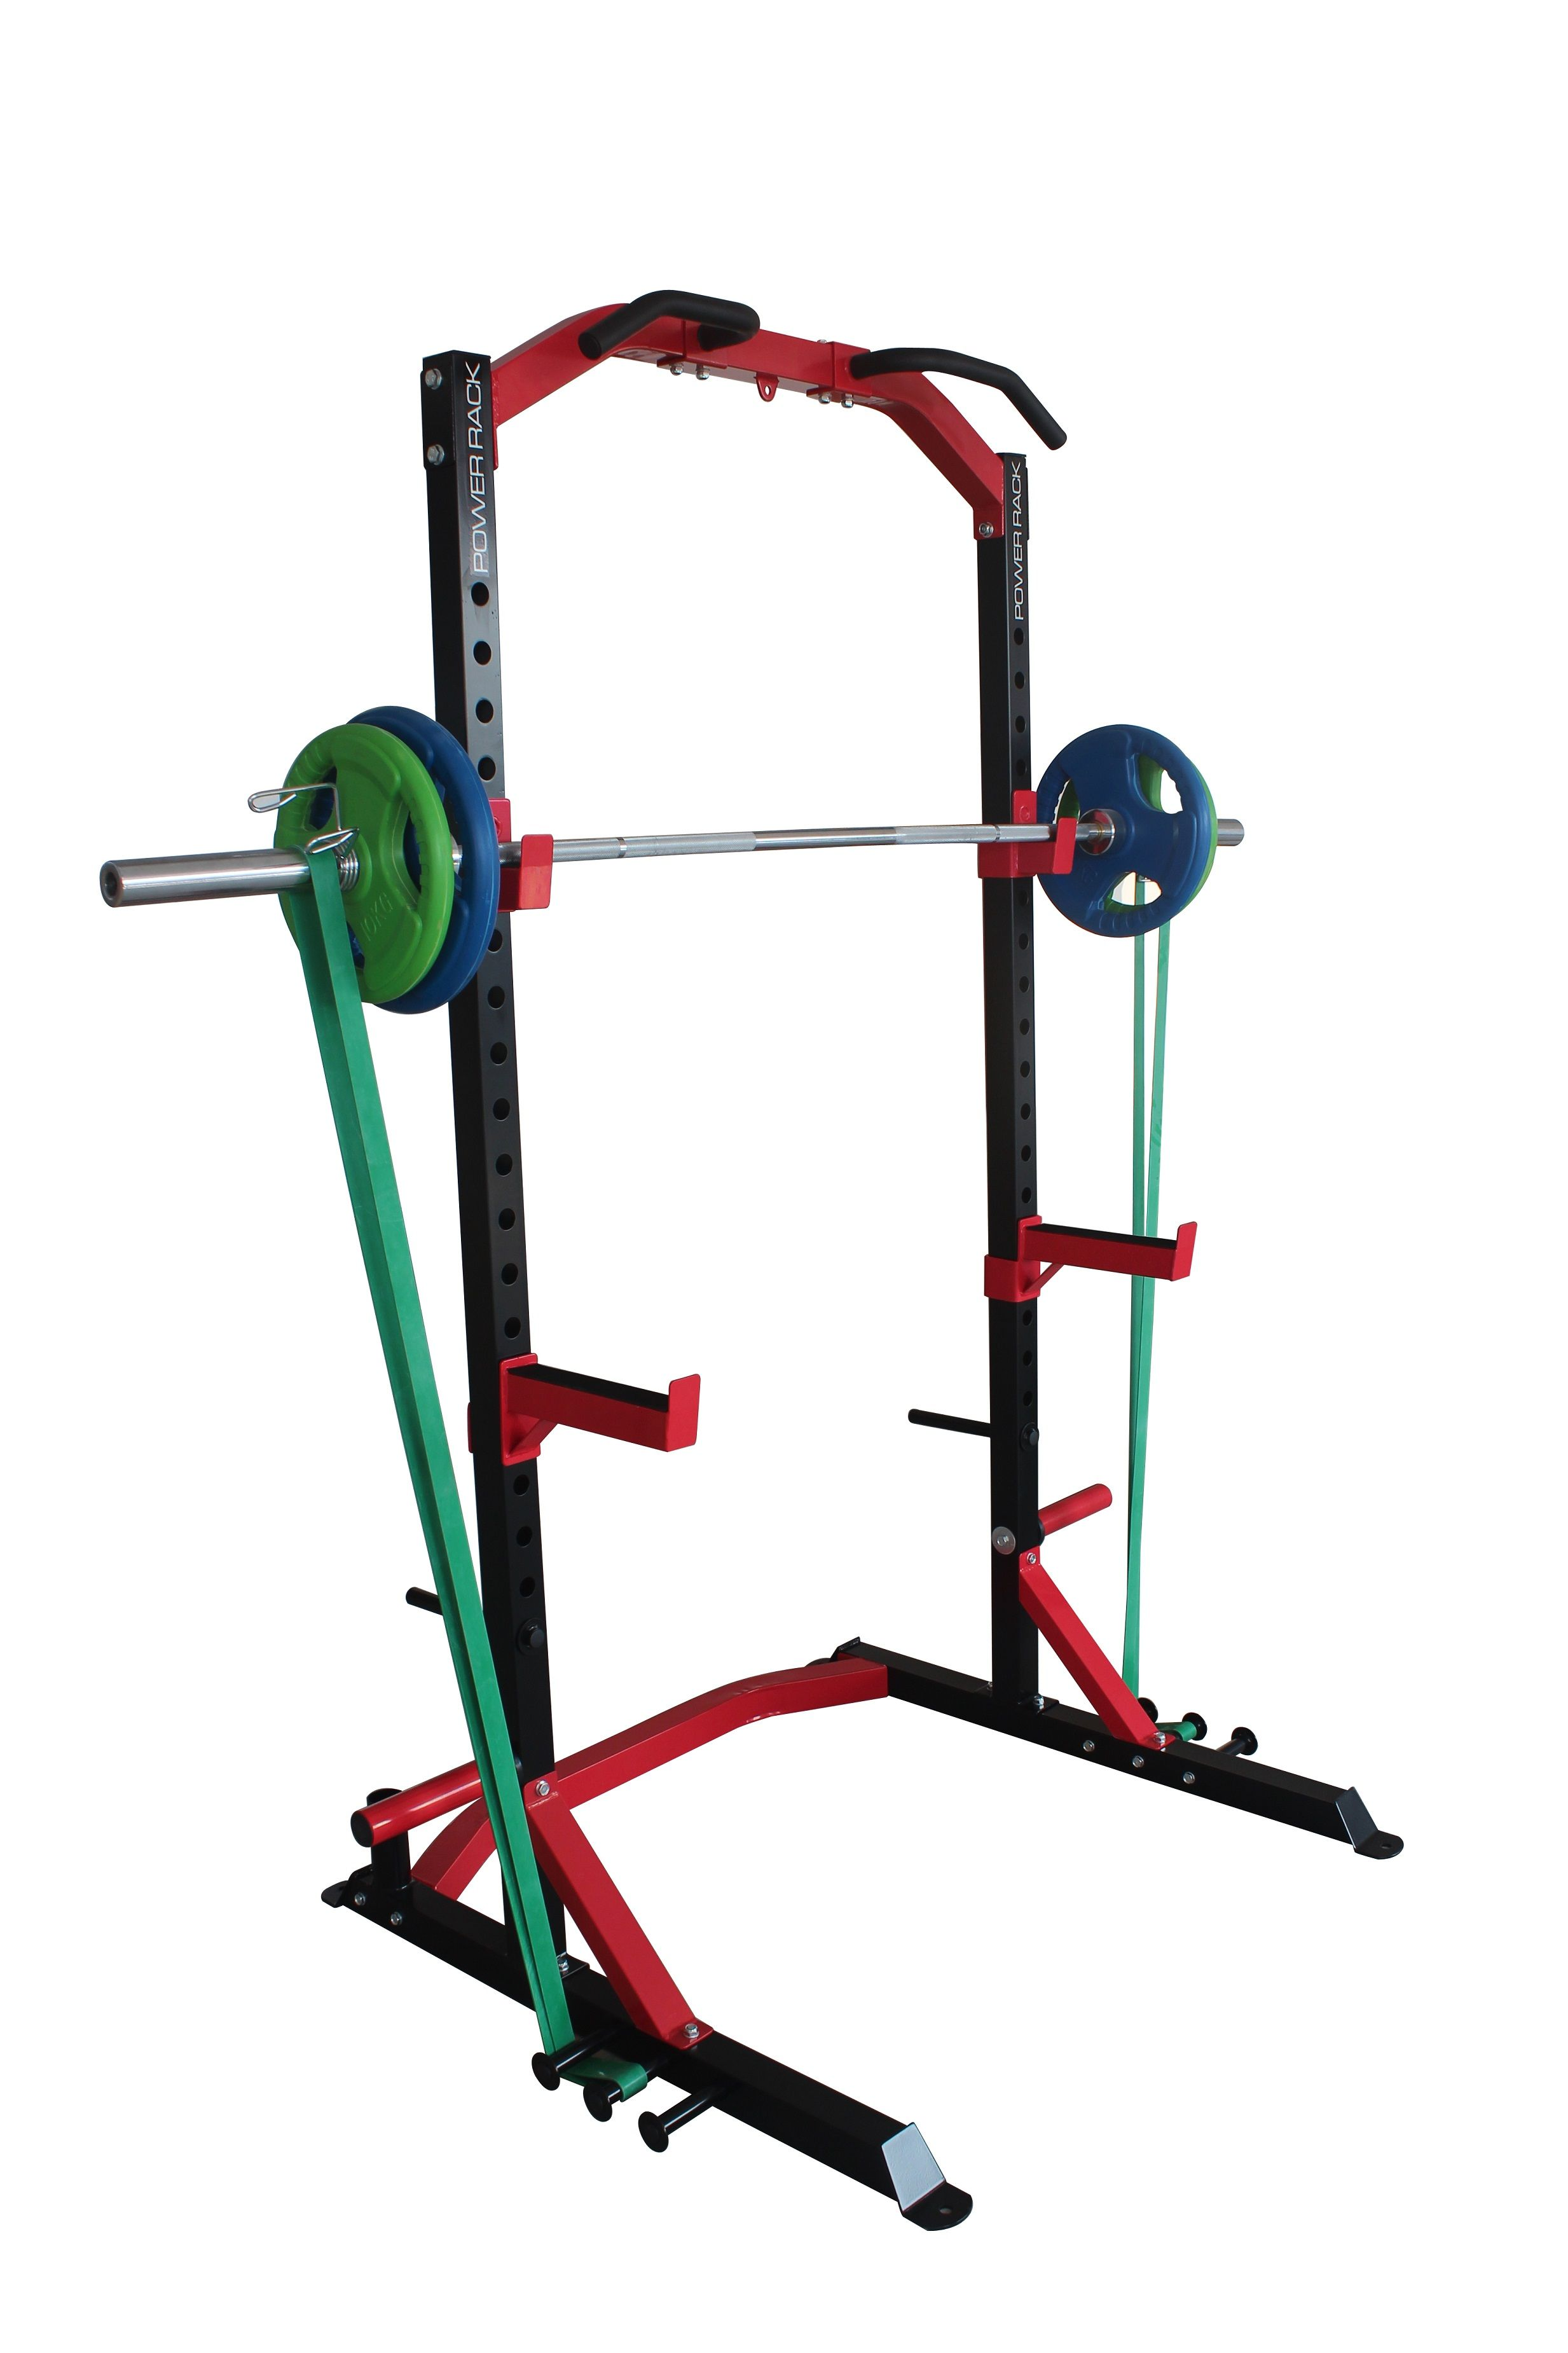 bench chin jaw or safety core rubber weights trainer olympic lock collars bars row storage plates rack tree dip shop multi handles up trpc kg fid barbell packages tbar power